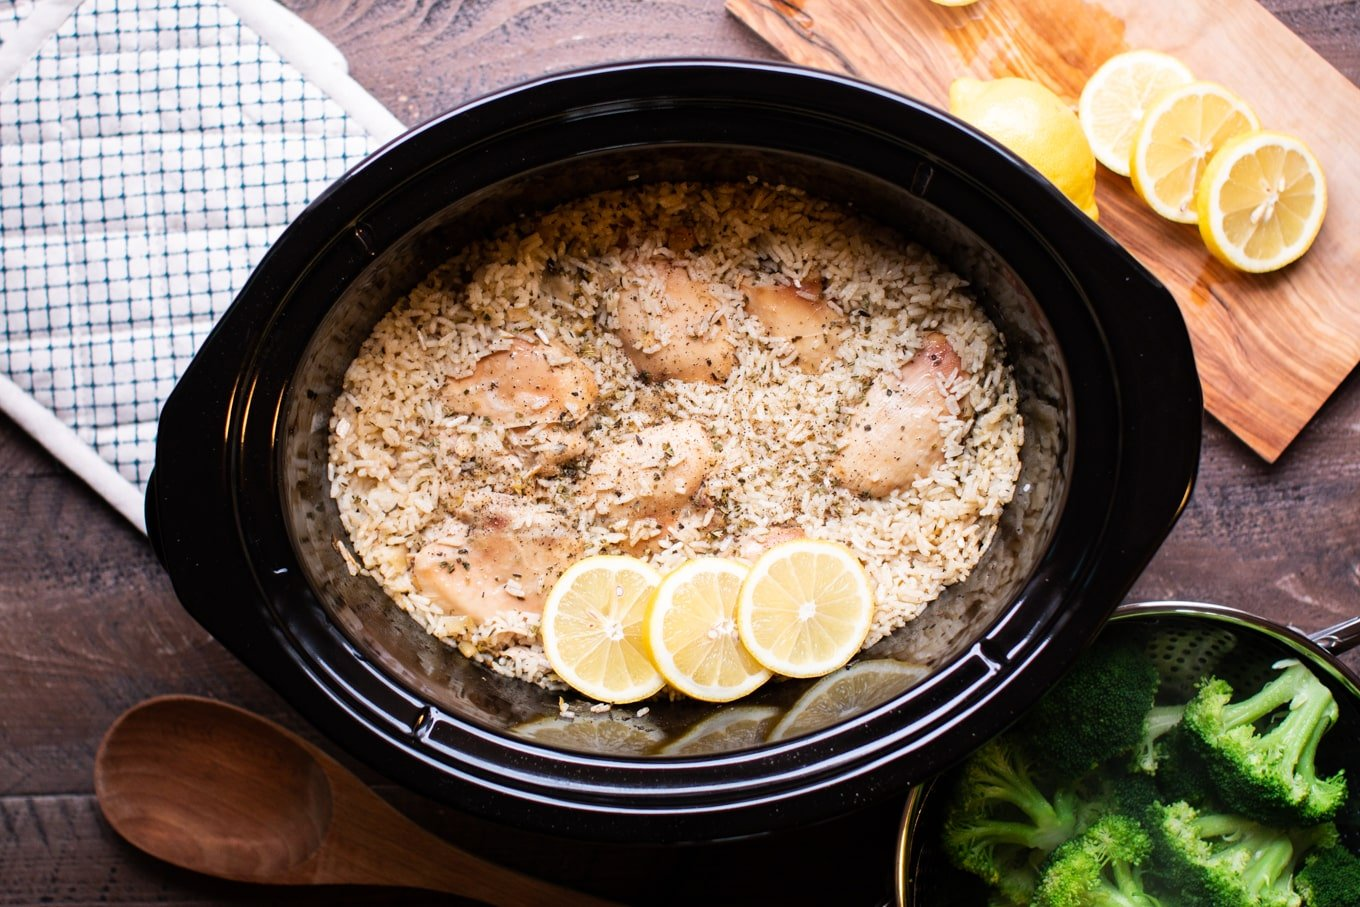 cooked lemon chicken and rice in slow cooker with wooden spoon on the side.